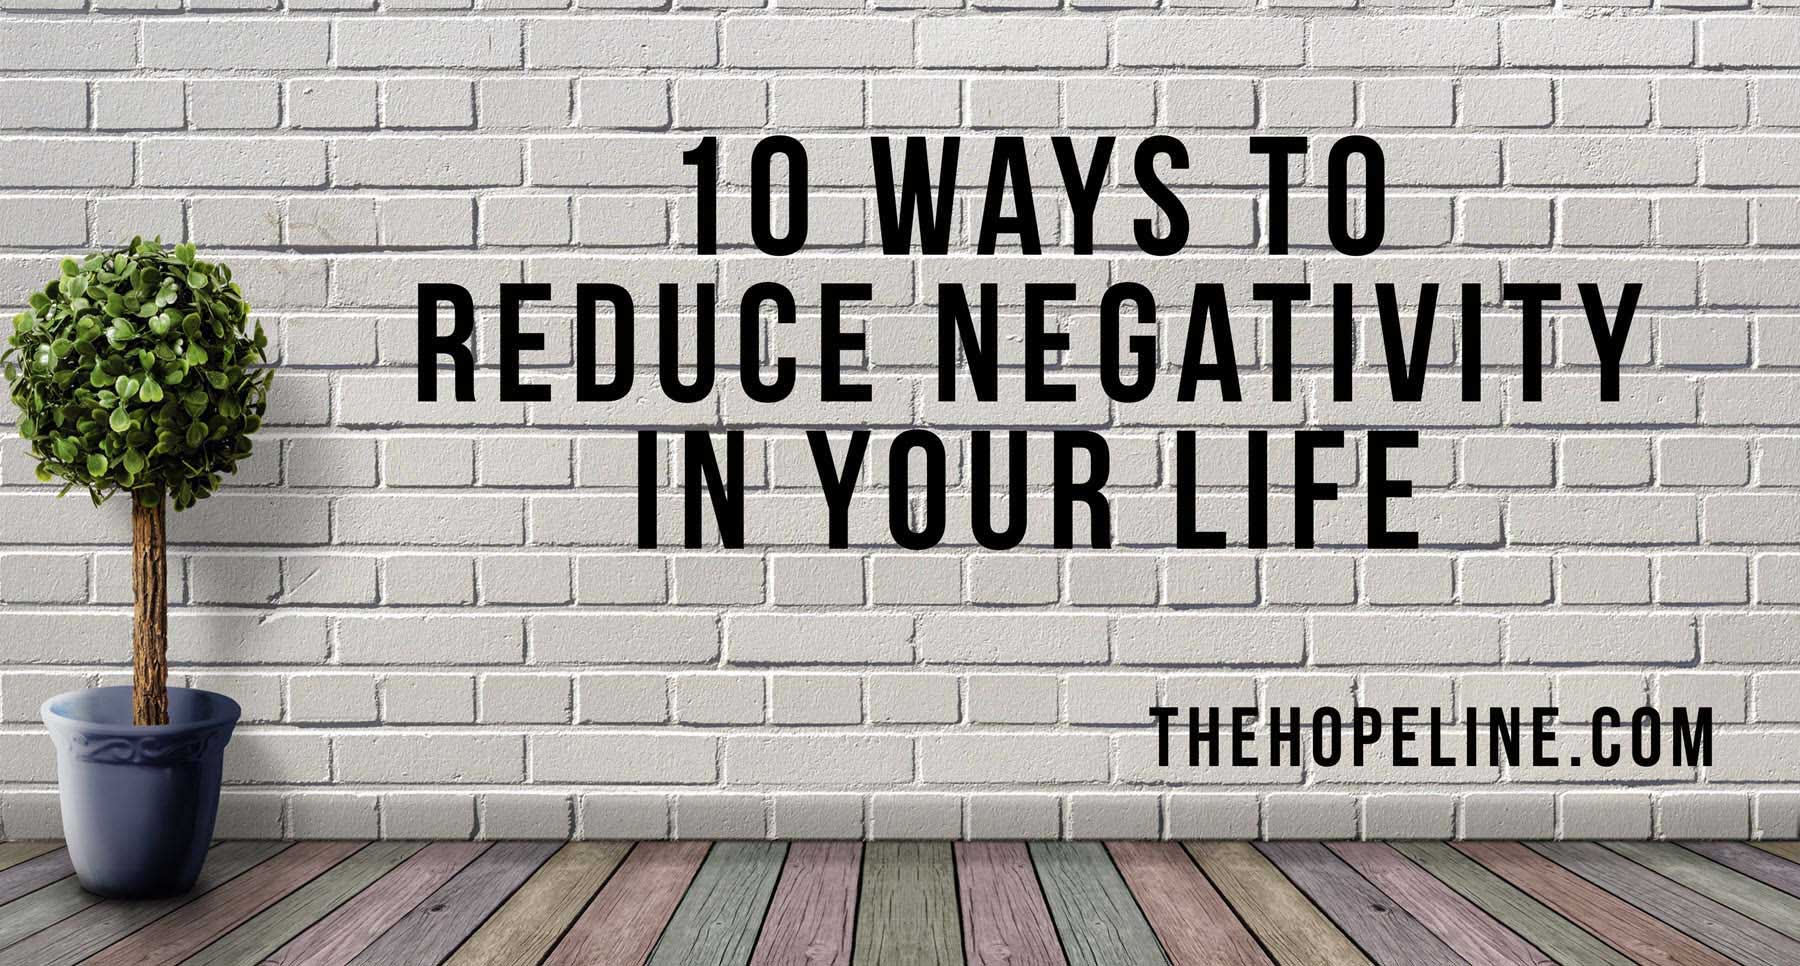 Self-Care-checklist-10-Ways-to-Reduce-Negativity-in-Your-Life-How-to-stop-negative-thoughts-TheHopeline